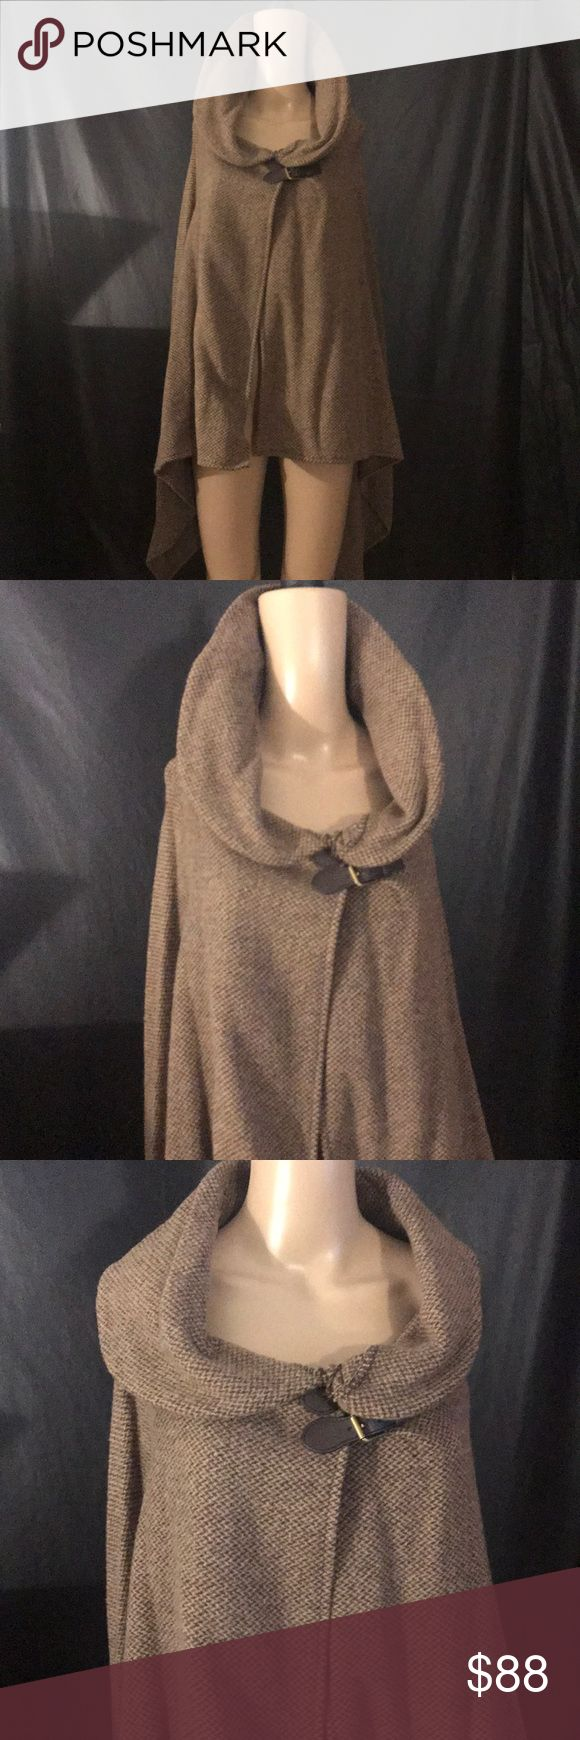 🐎Ralph Lauren Polo Shaw Cape One Size Fits All🐎 🐎Ralph Lauren Polo Shaw Cape One Size Fits All🐎BRAND NEW. NEVER WORN. TAGS STILL ATTACHED. This is absolutely beautiful, it's stunning, and it is elegant. Be warm while looking darling in this warm, cozy cape. This is perfect with jeans and riding boots! Ralph Lauren Jackets & Coats Capes